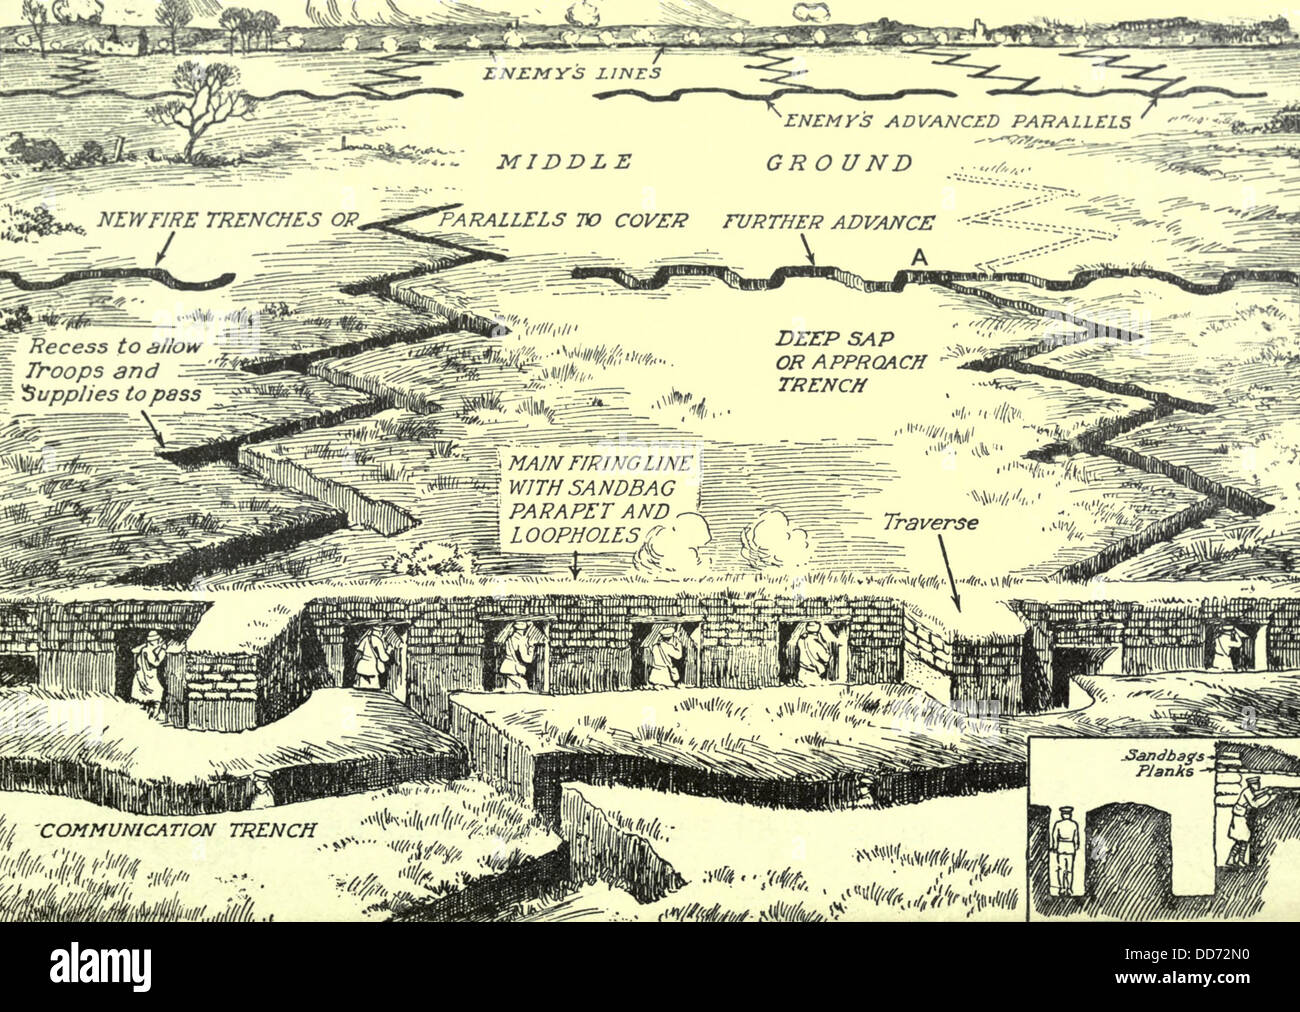 ww1 trench system diagram 30 amp generator plug wiring world war 1 of a typical complex on the